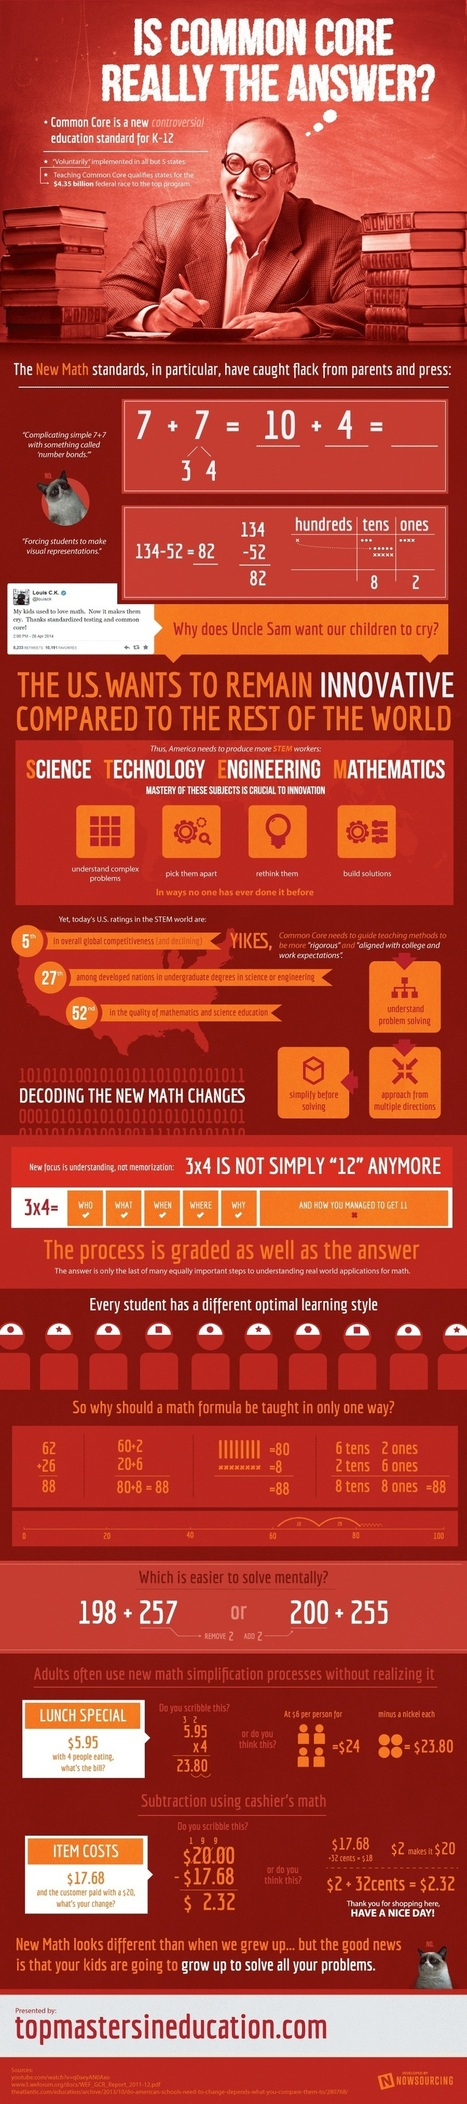 [Infographic] Is Common Core Really the Answer? - EdTechReview™ (ETR) | EdTechReview | Scoop.it